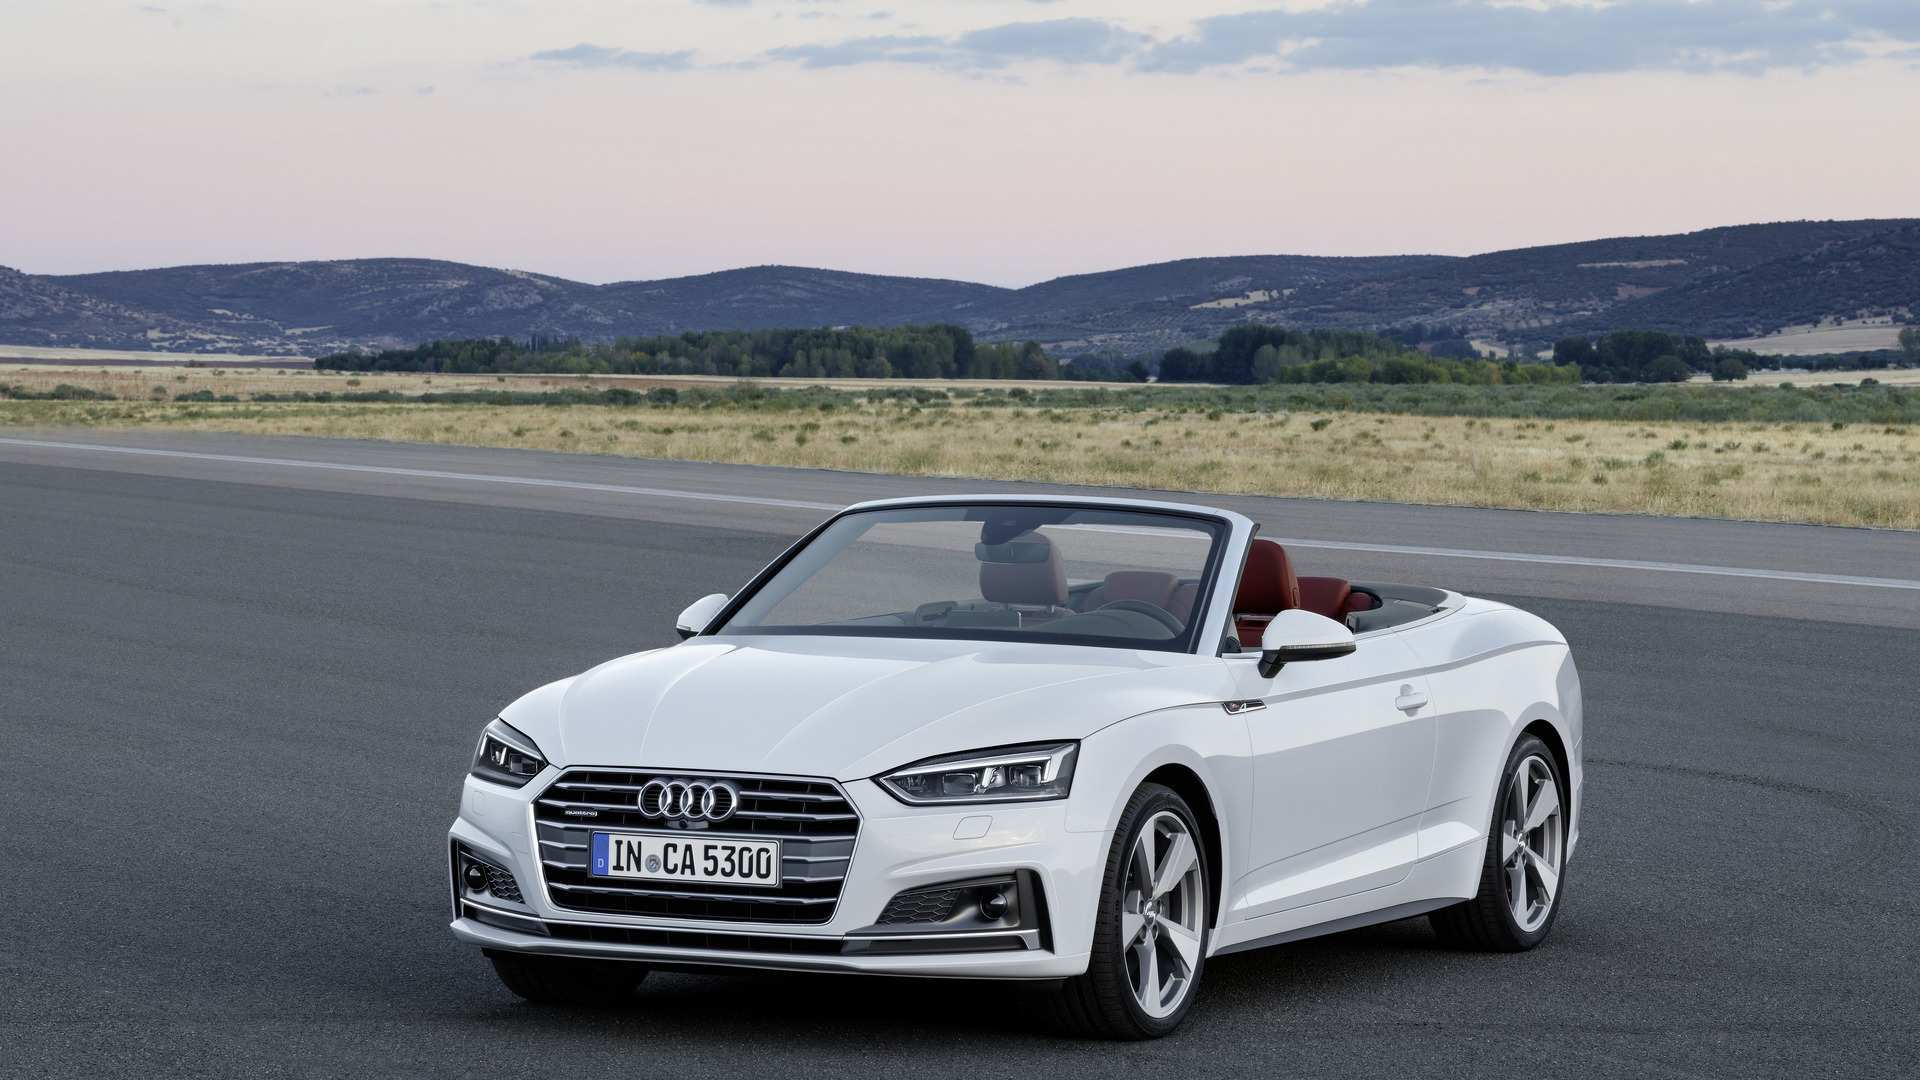 26 New Audi Convertible 2020 Release Date